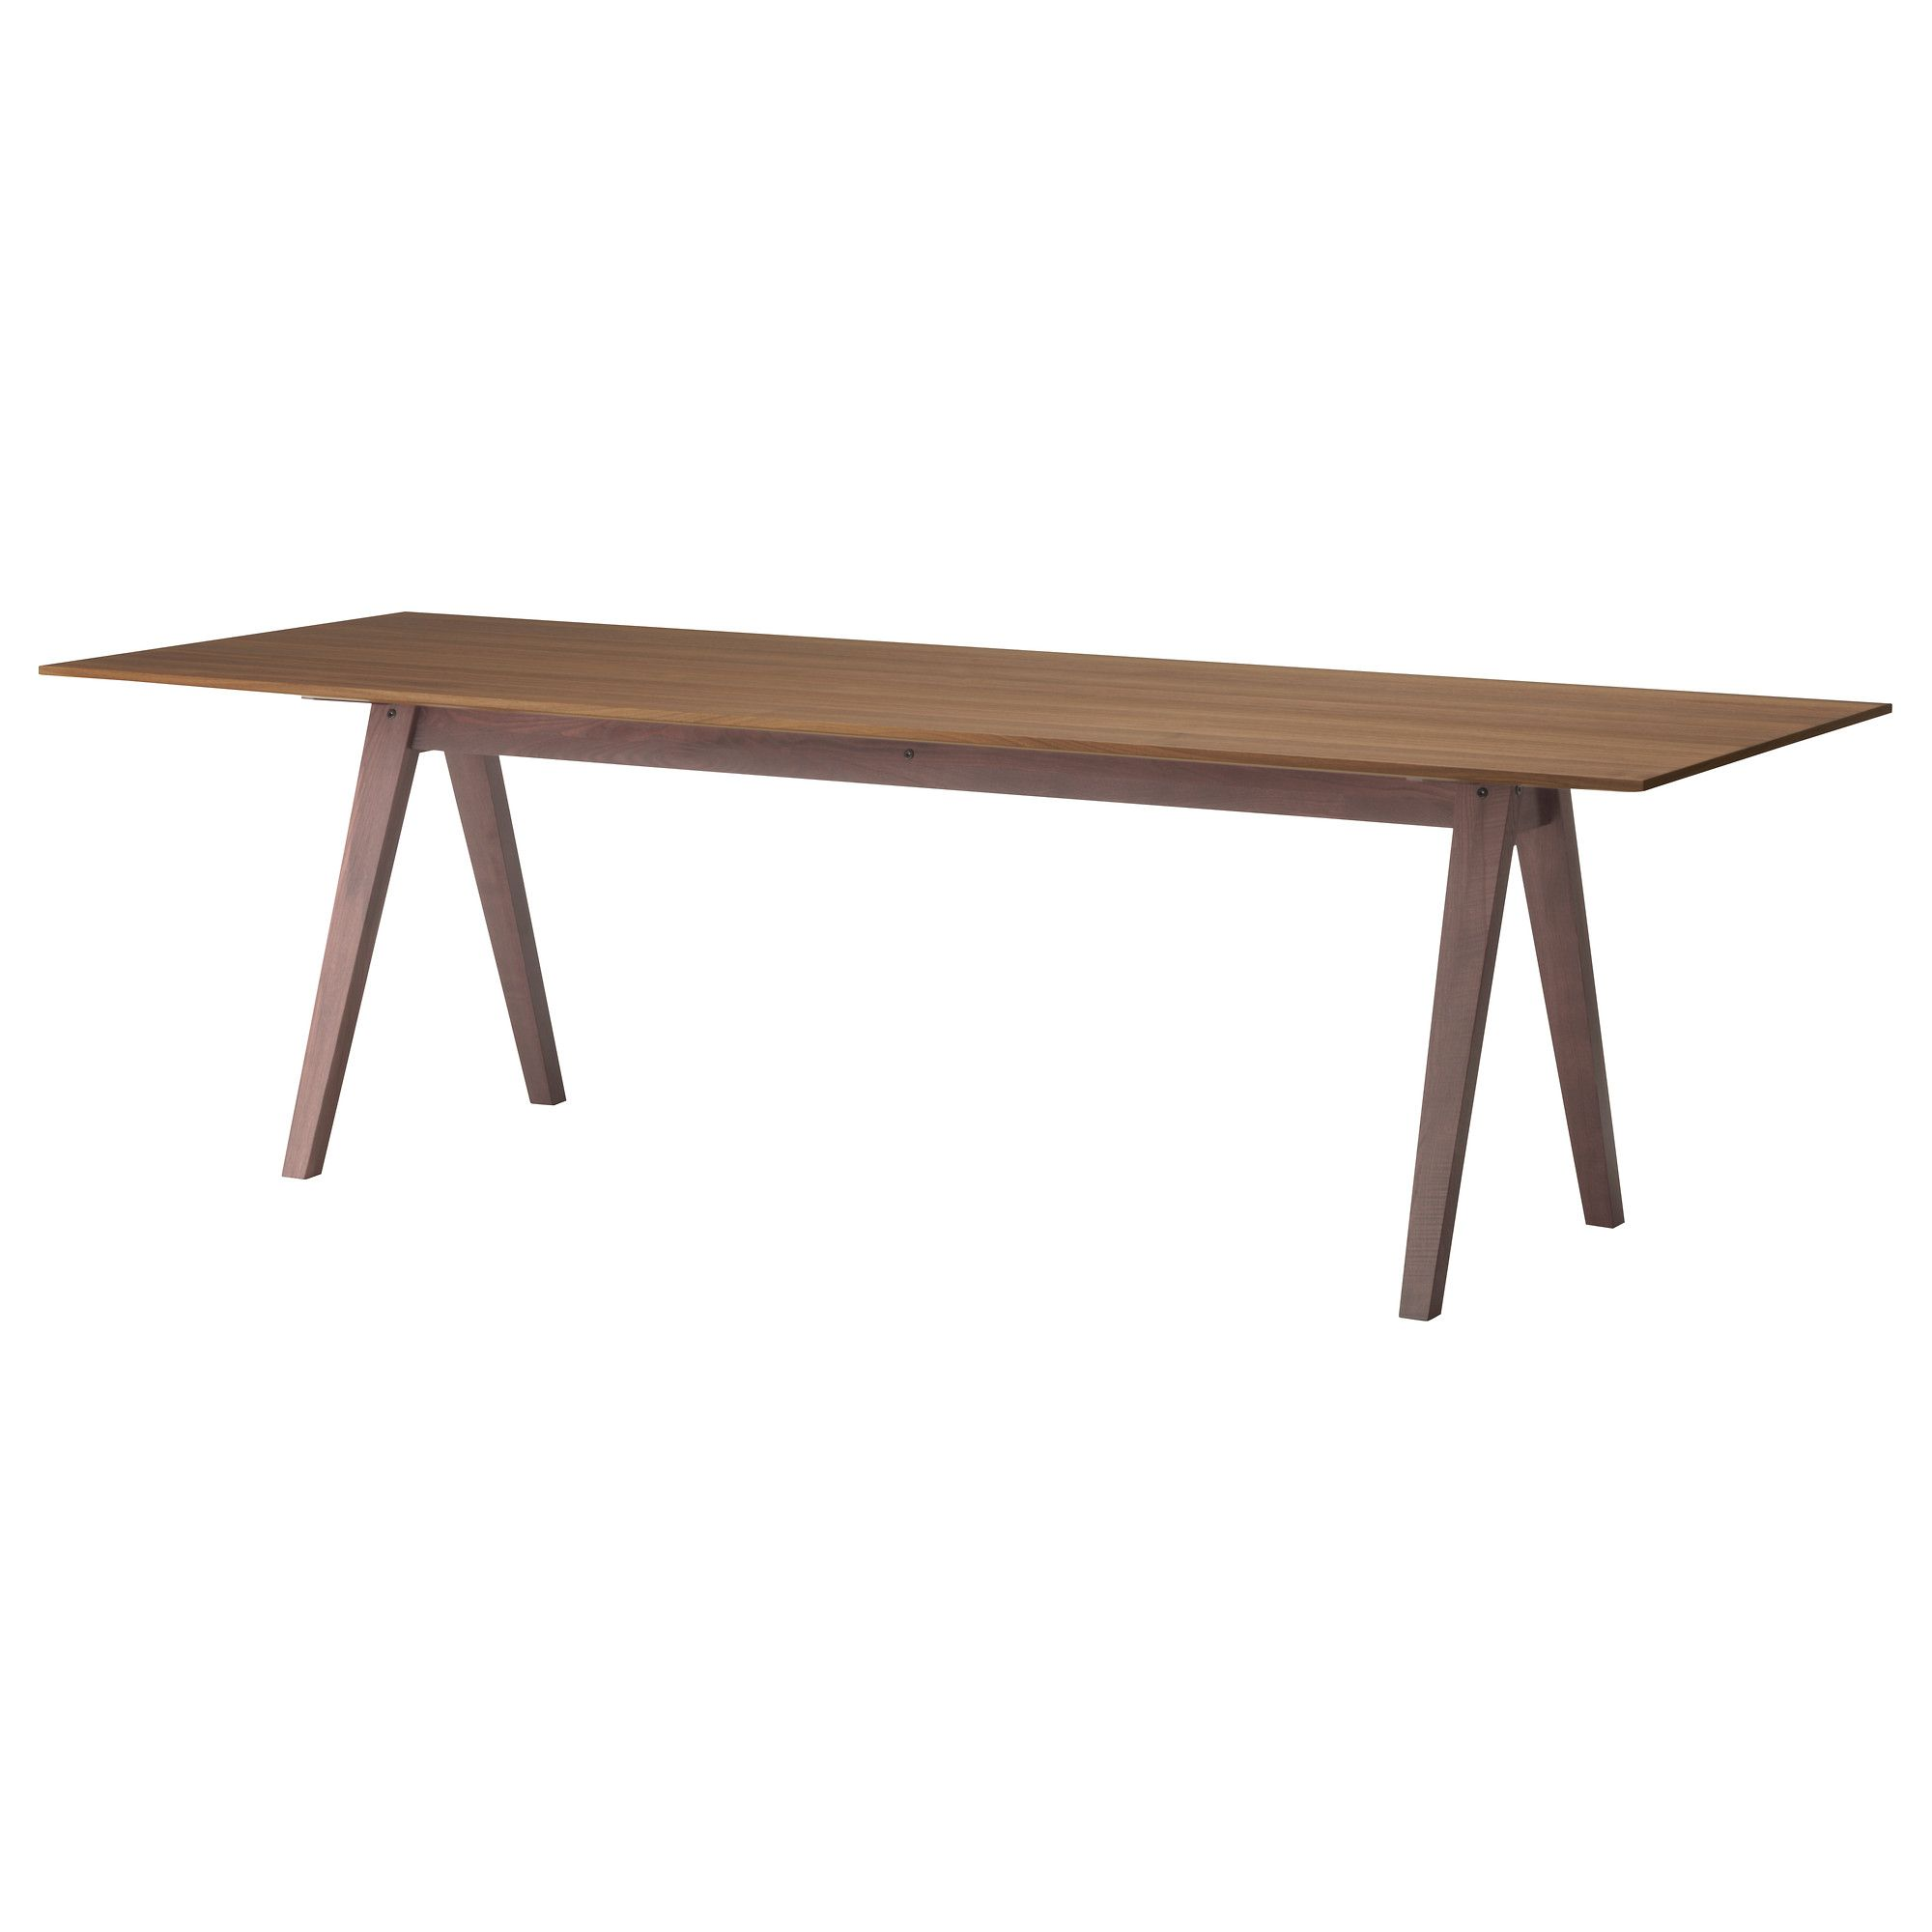 Stockholm table 240x90 cm ikea grande table for Table salle a manger grande longueur